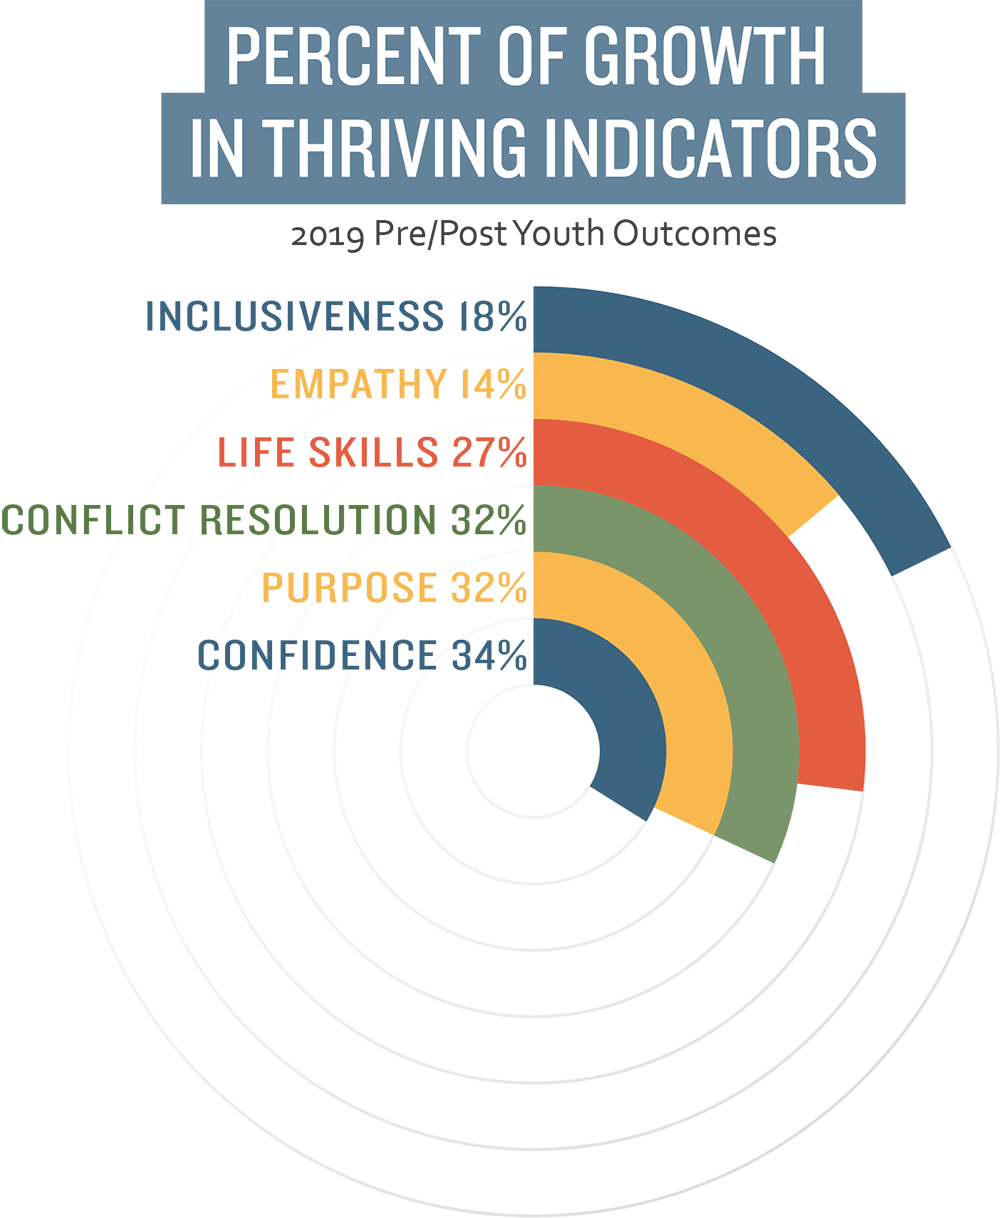 Percent of growth in thriving indicators